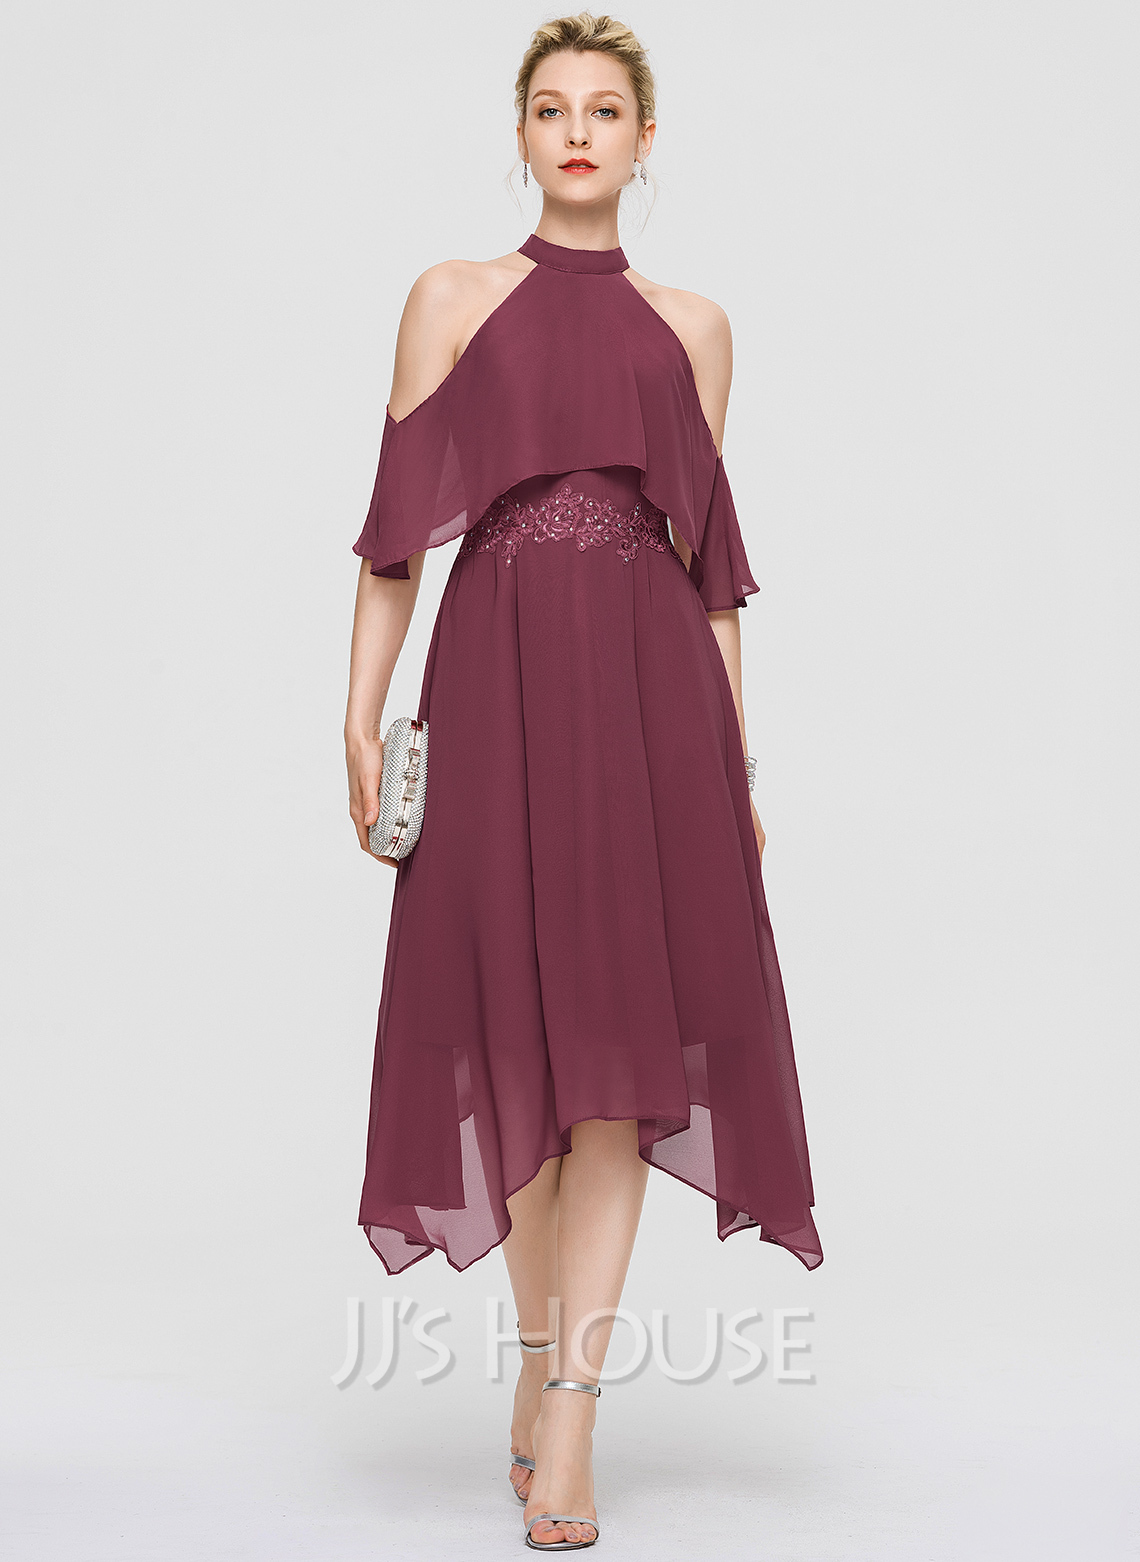 High Neck Asymmetrical Chiffon Cocktail Dress With Lace